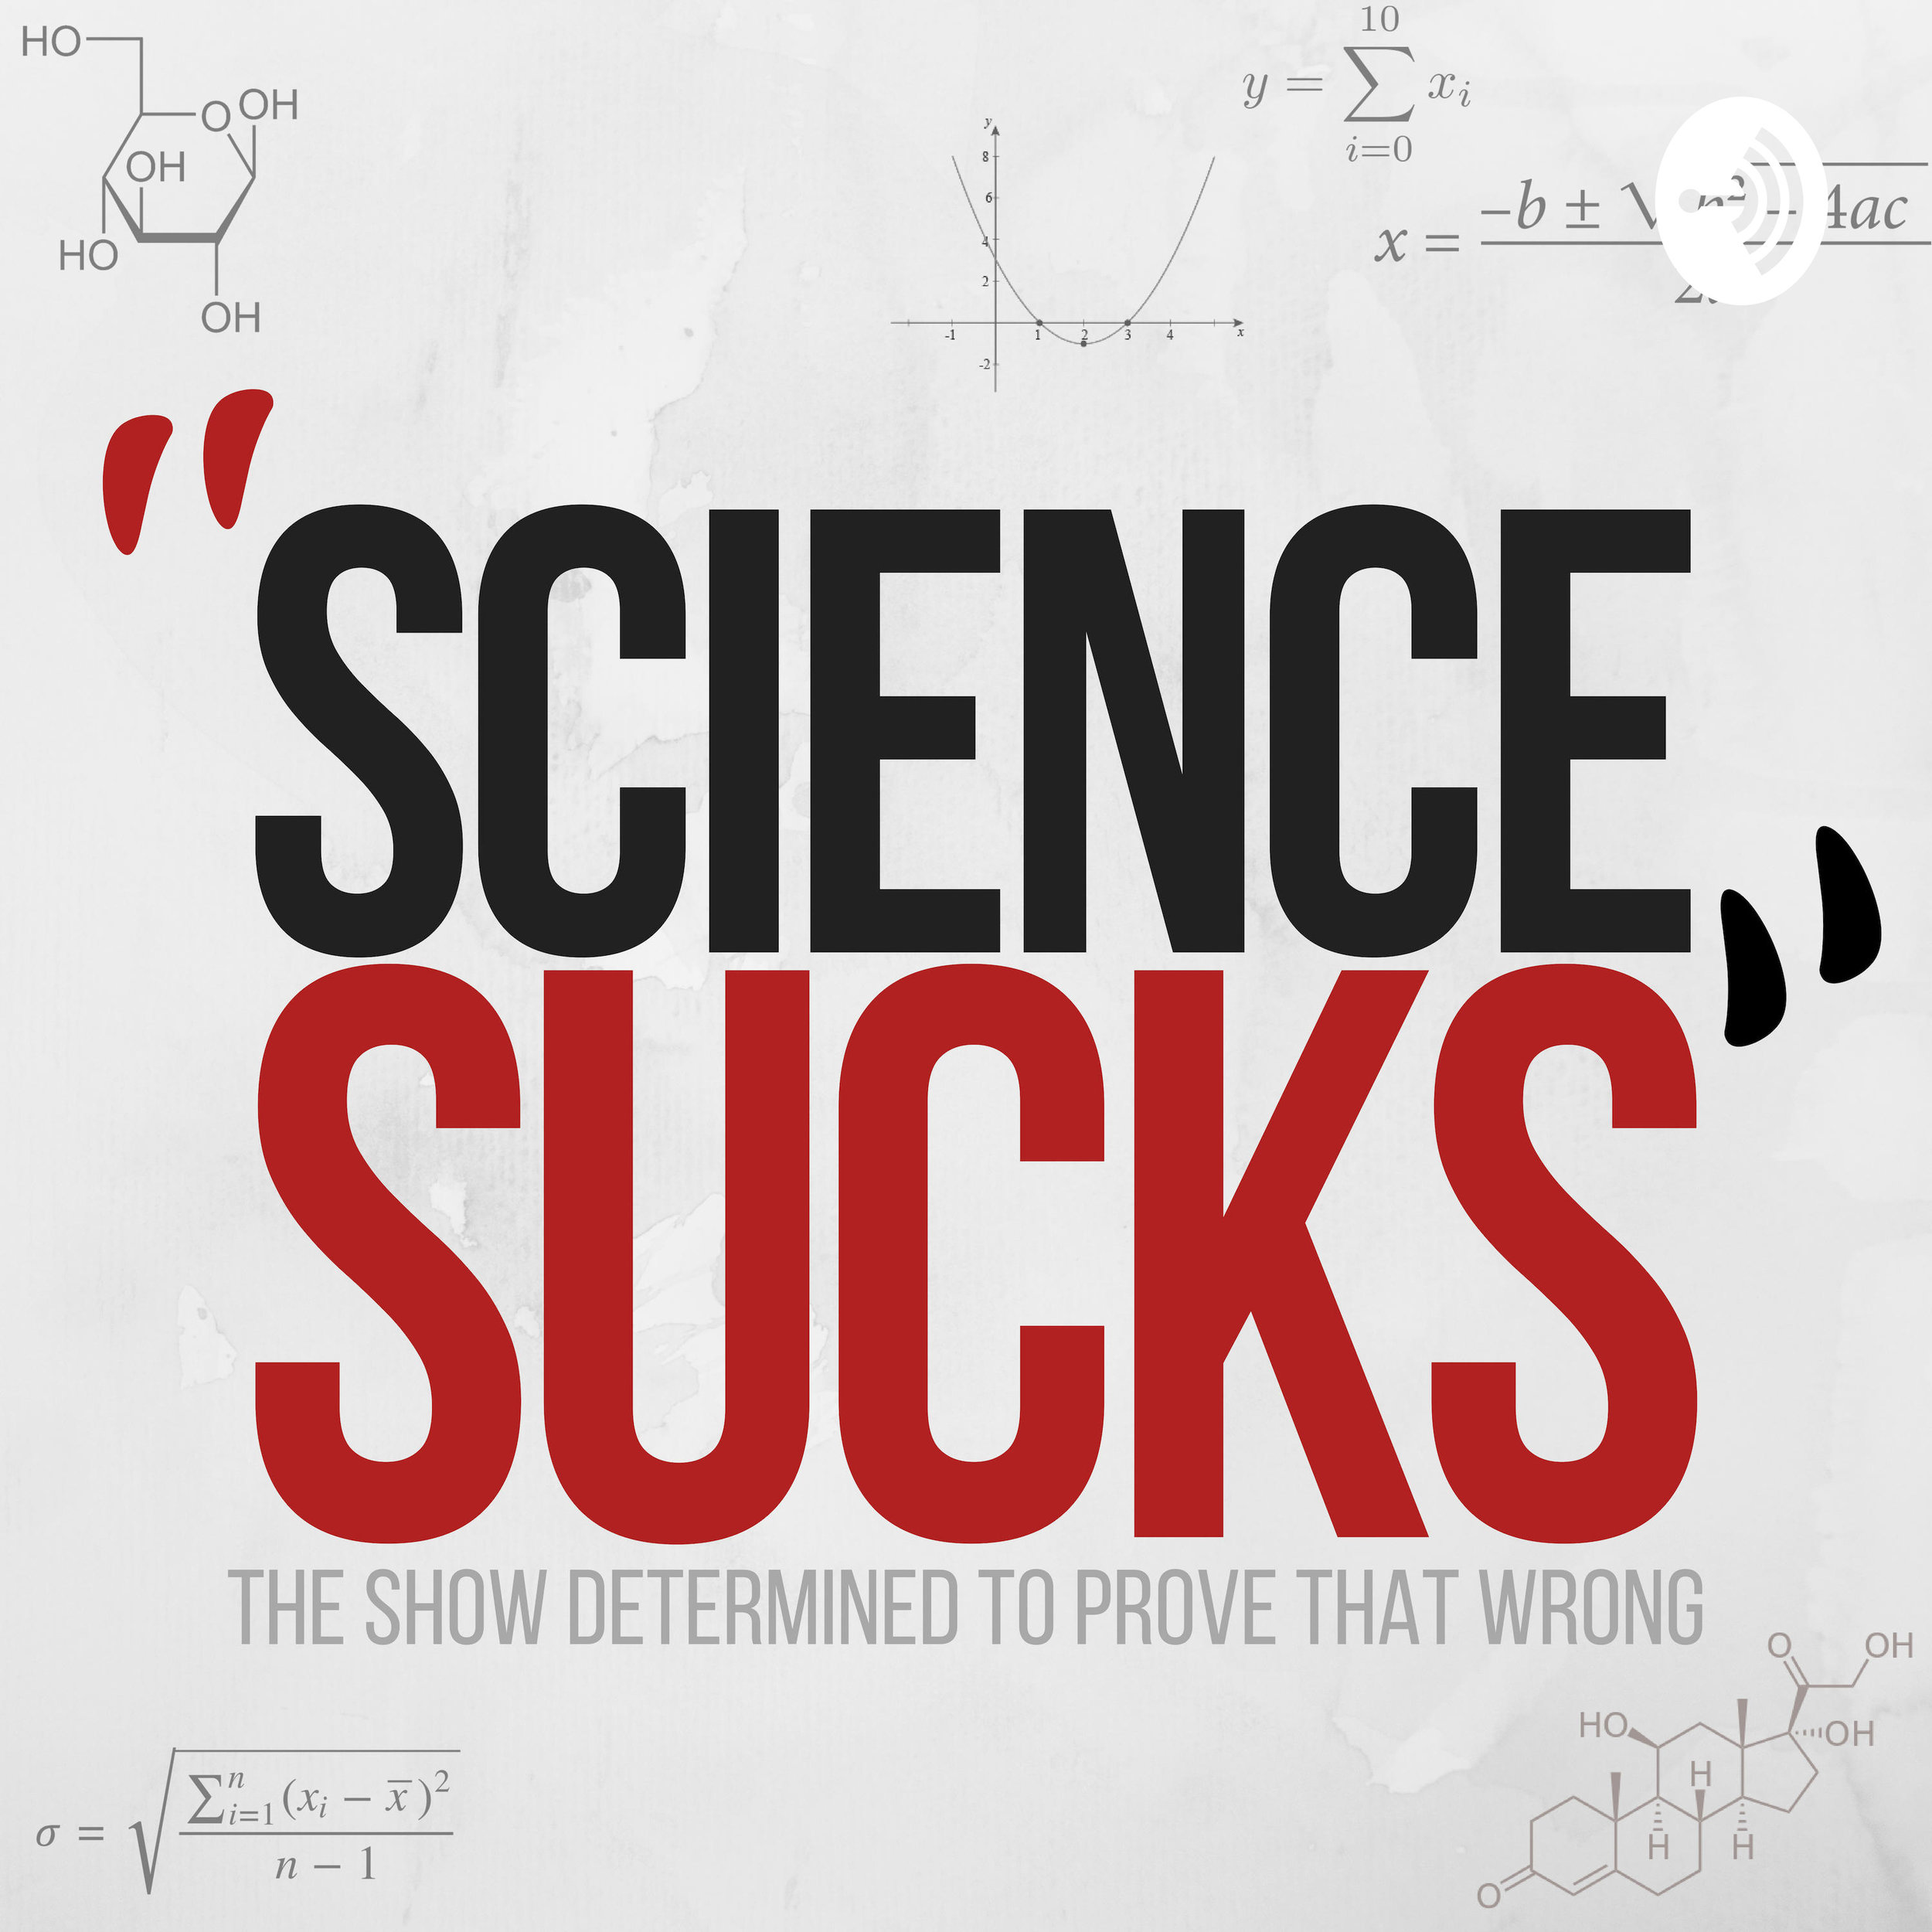 ScienceSucks.jpeg